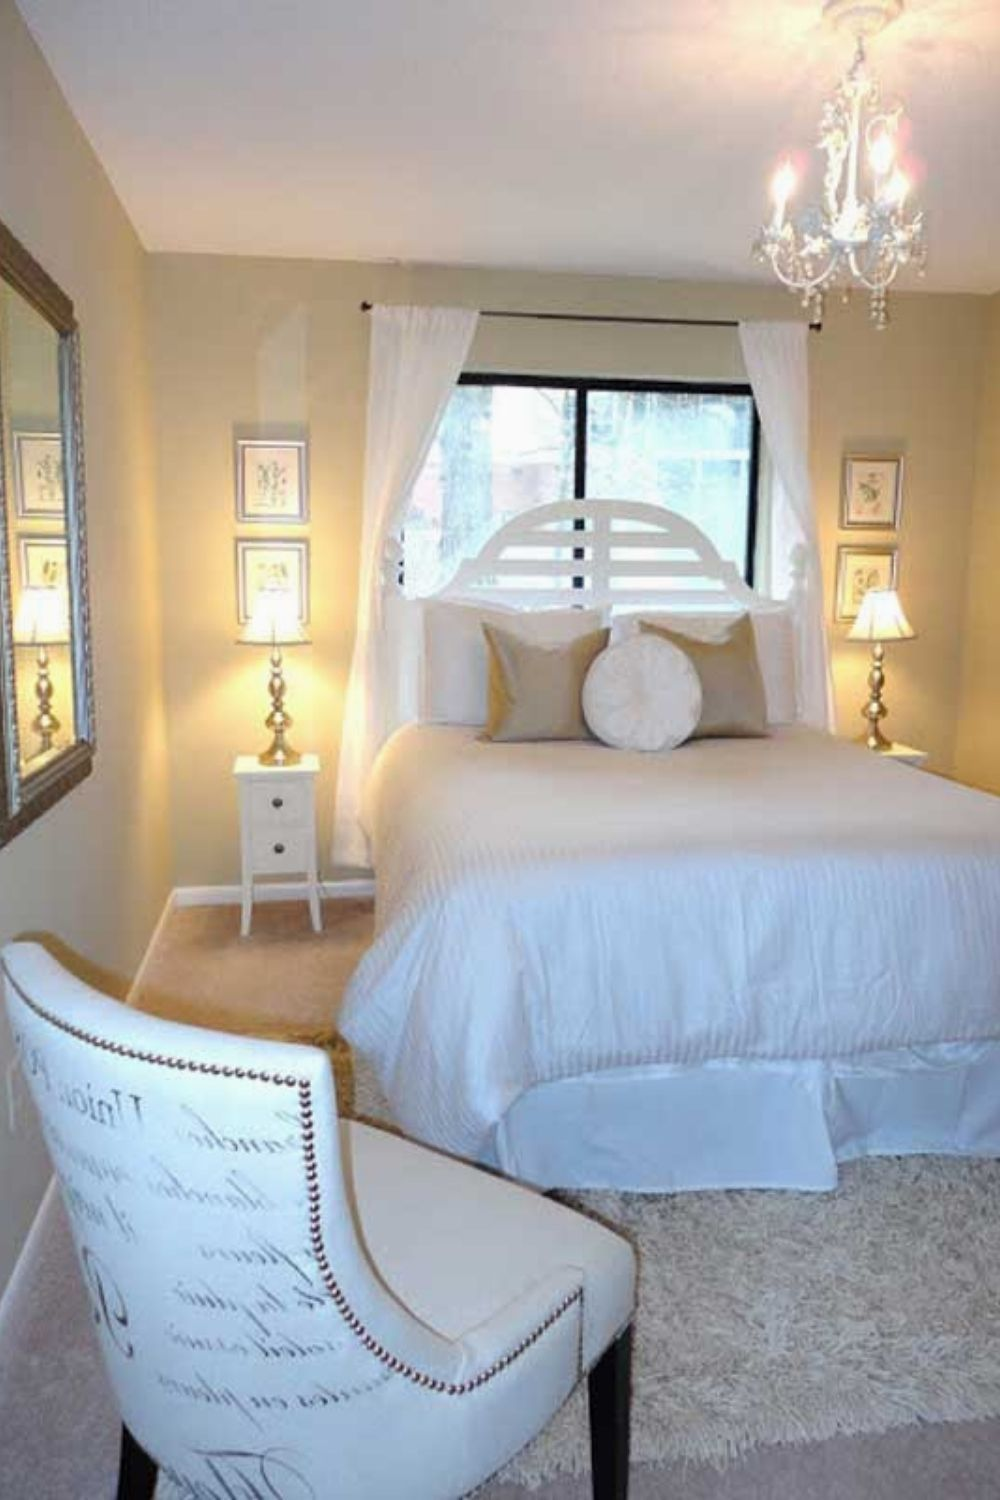 Perfect Bedroom Ideas Green About House Castle 351501449 Blackfeaturewall Masterbedroomstyle Bedro Small Guest Bedroom Guest Bedroom Decor Small Guest Room